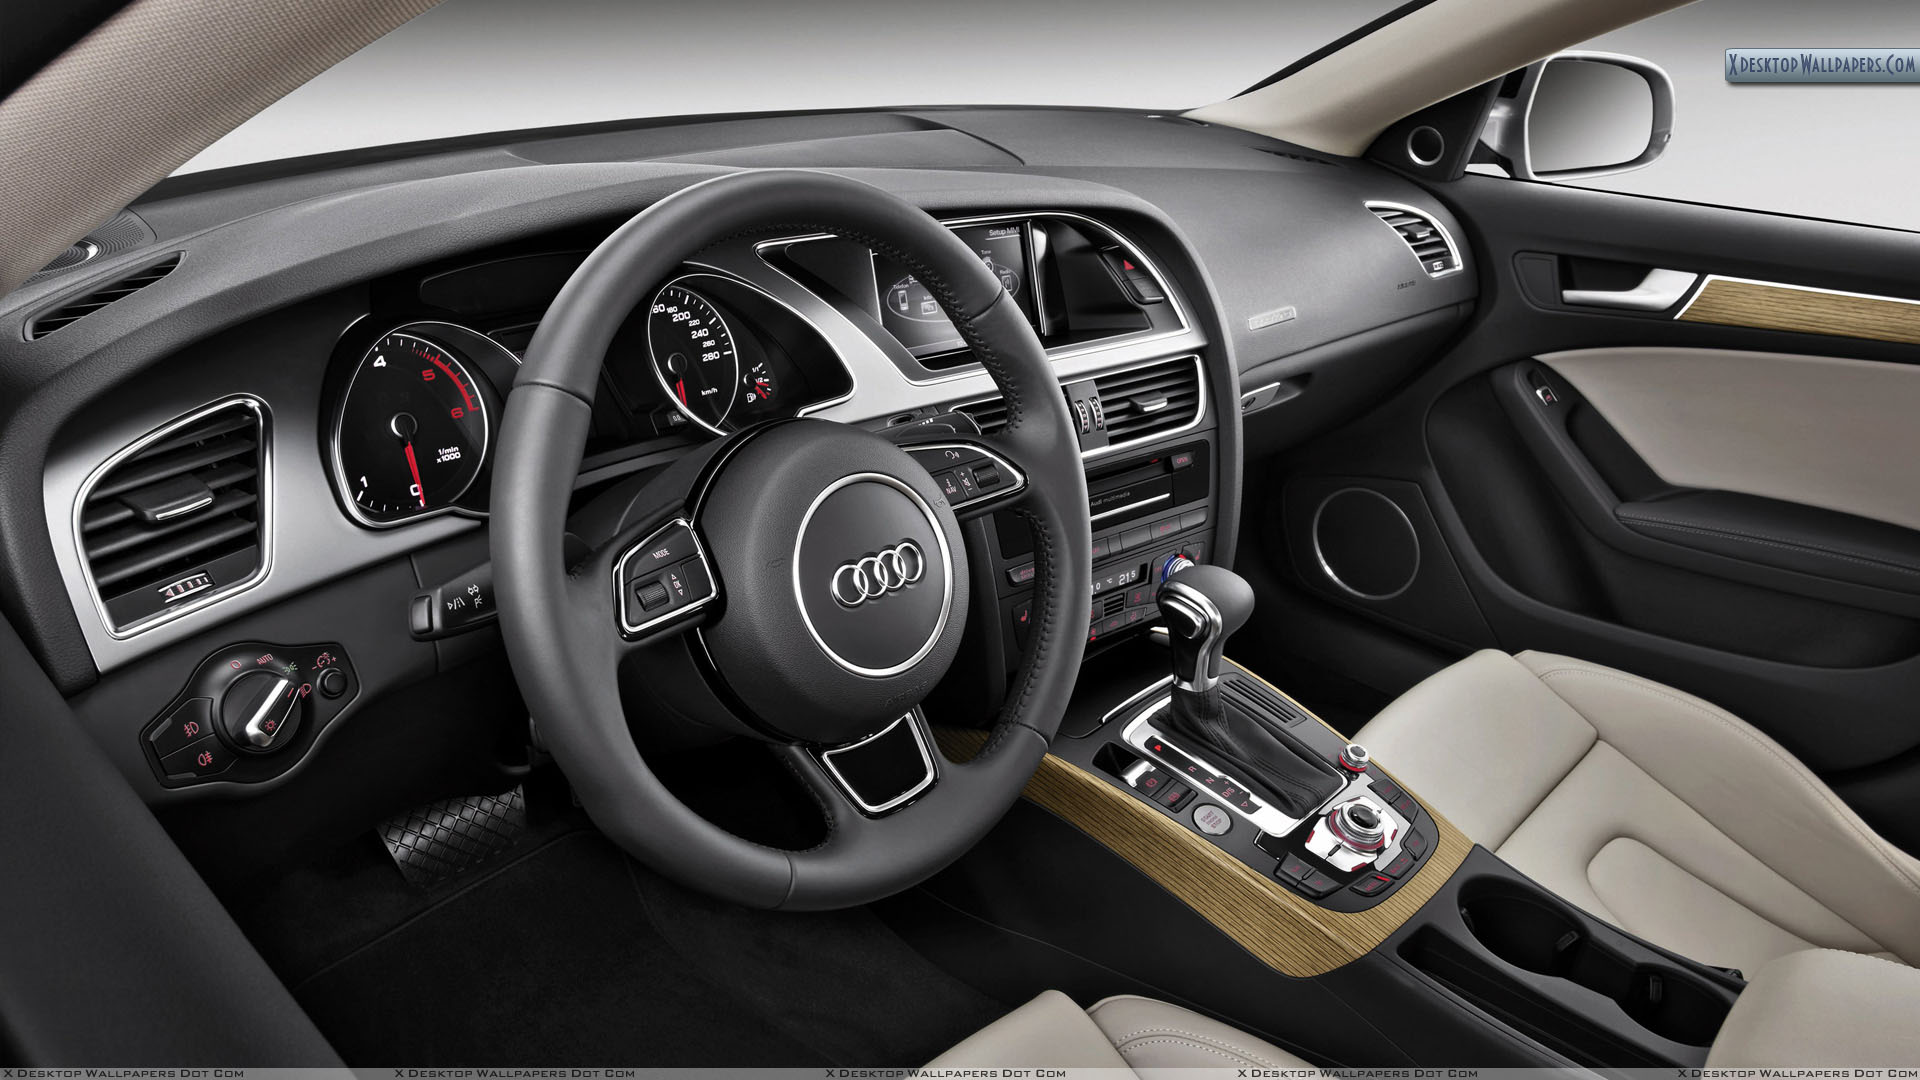 2012 audi a5 sportback interior picture wallpaper. Black Bedroom Furniture Sets. Home Design Ideas